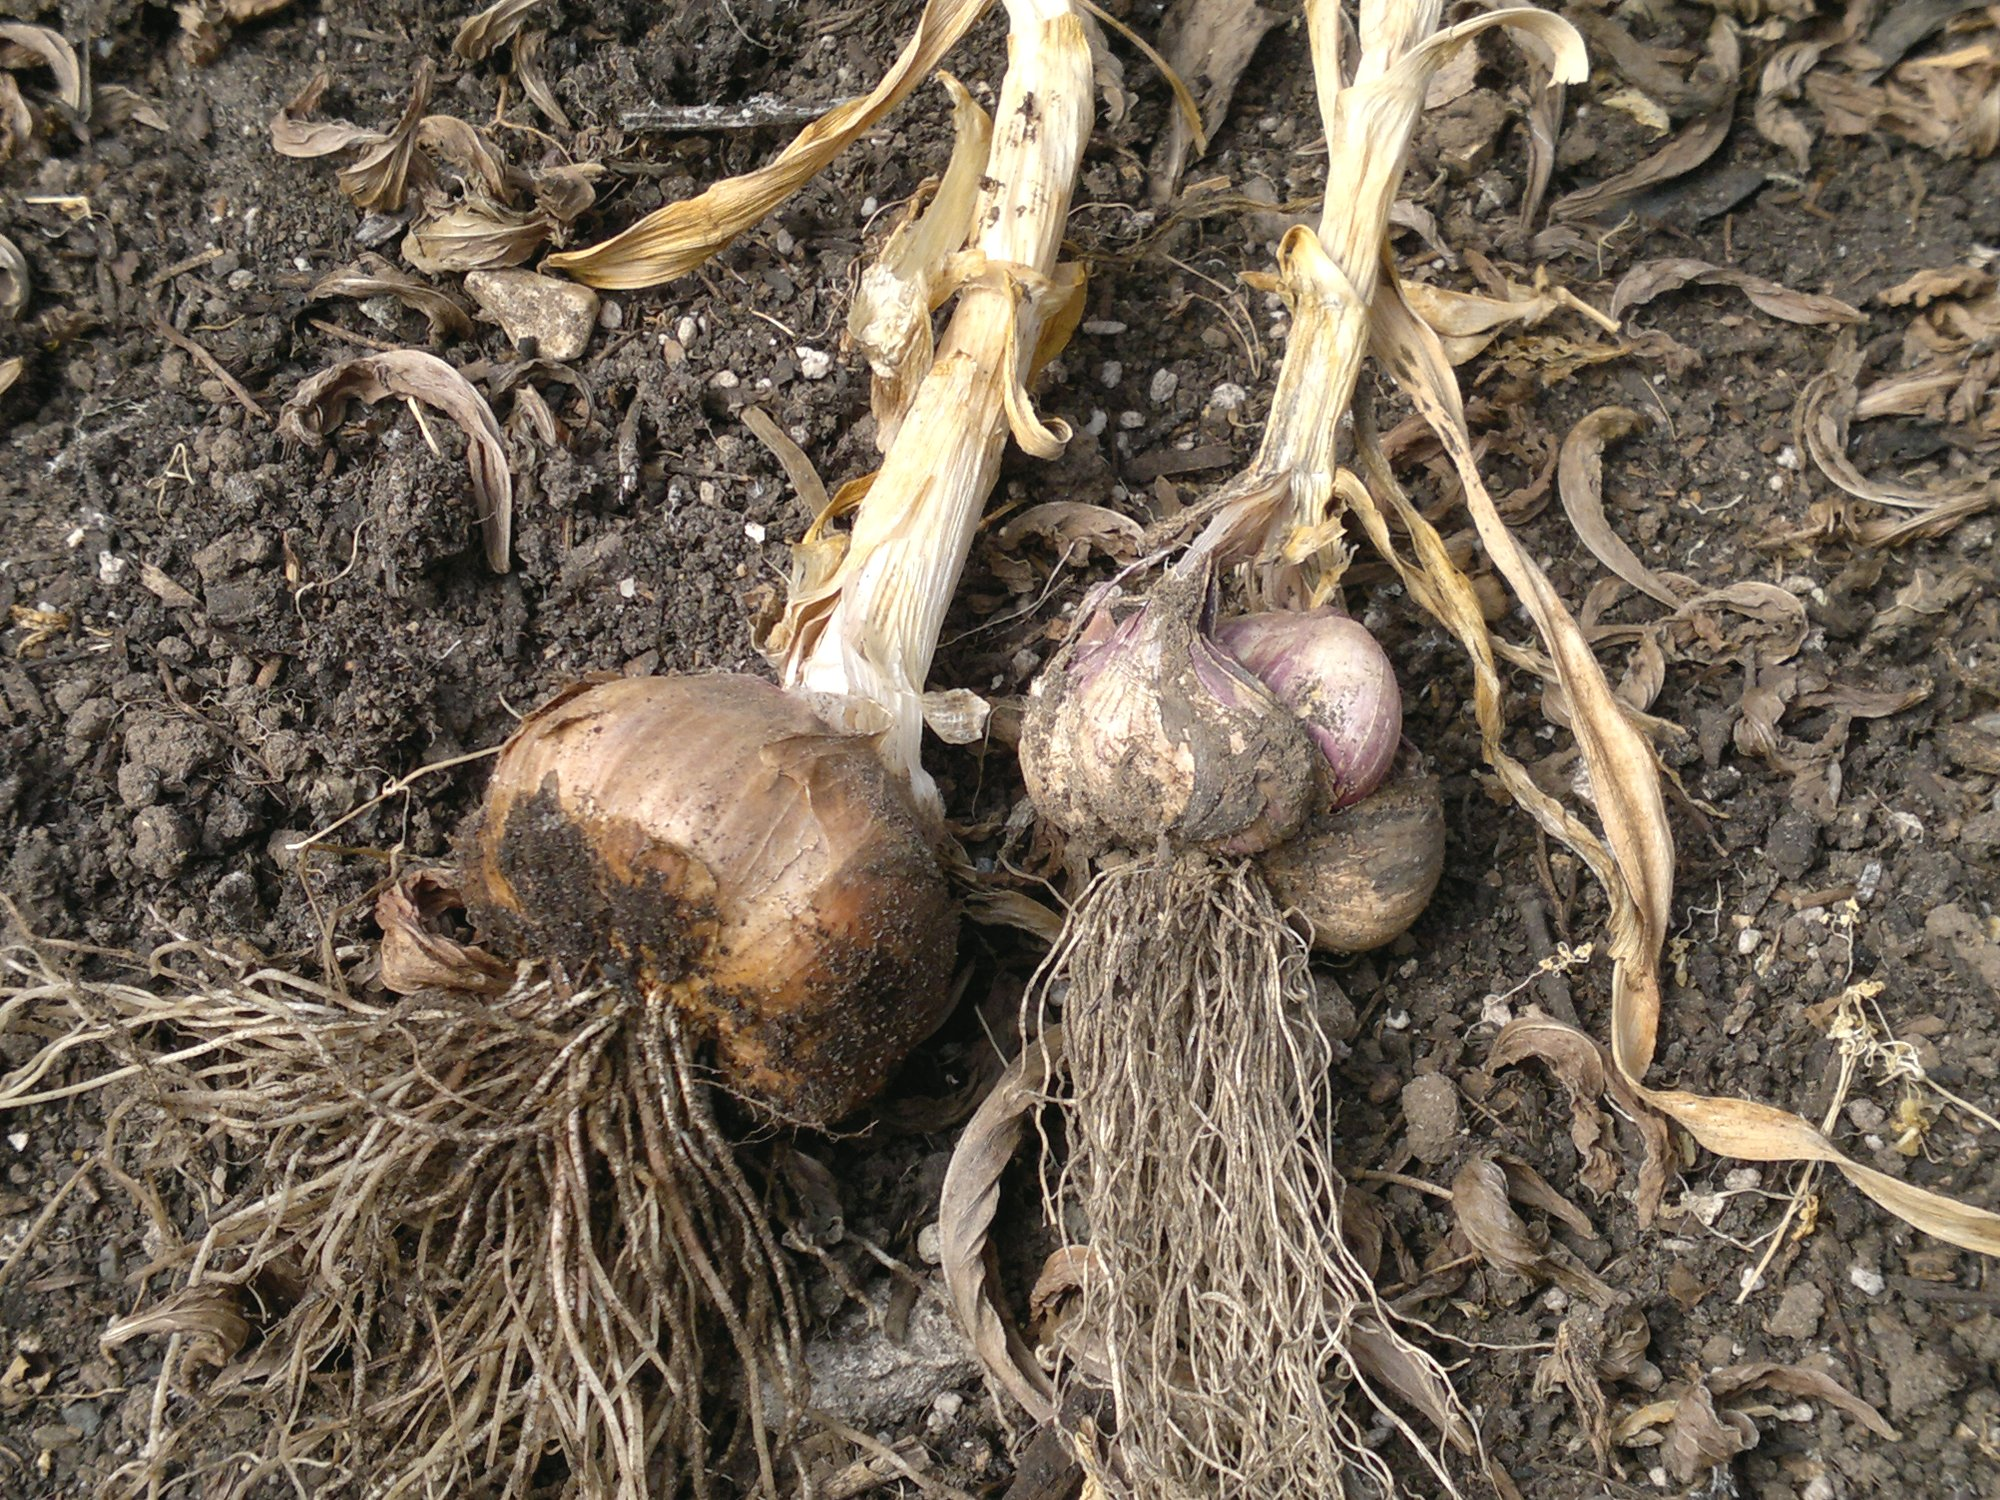 Early Purple Wight, showing one fully formed bulb on the left, and a somewhat malformed bulb on the right